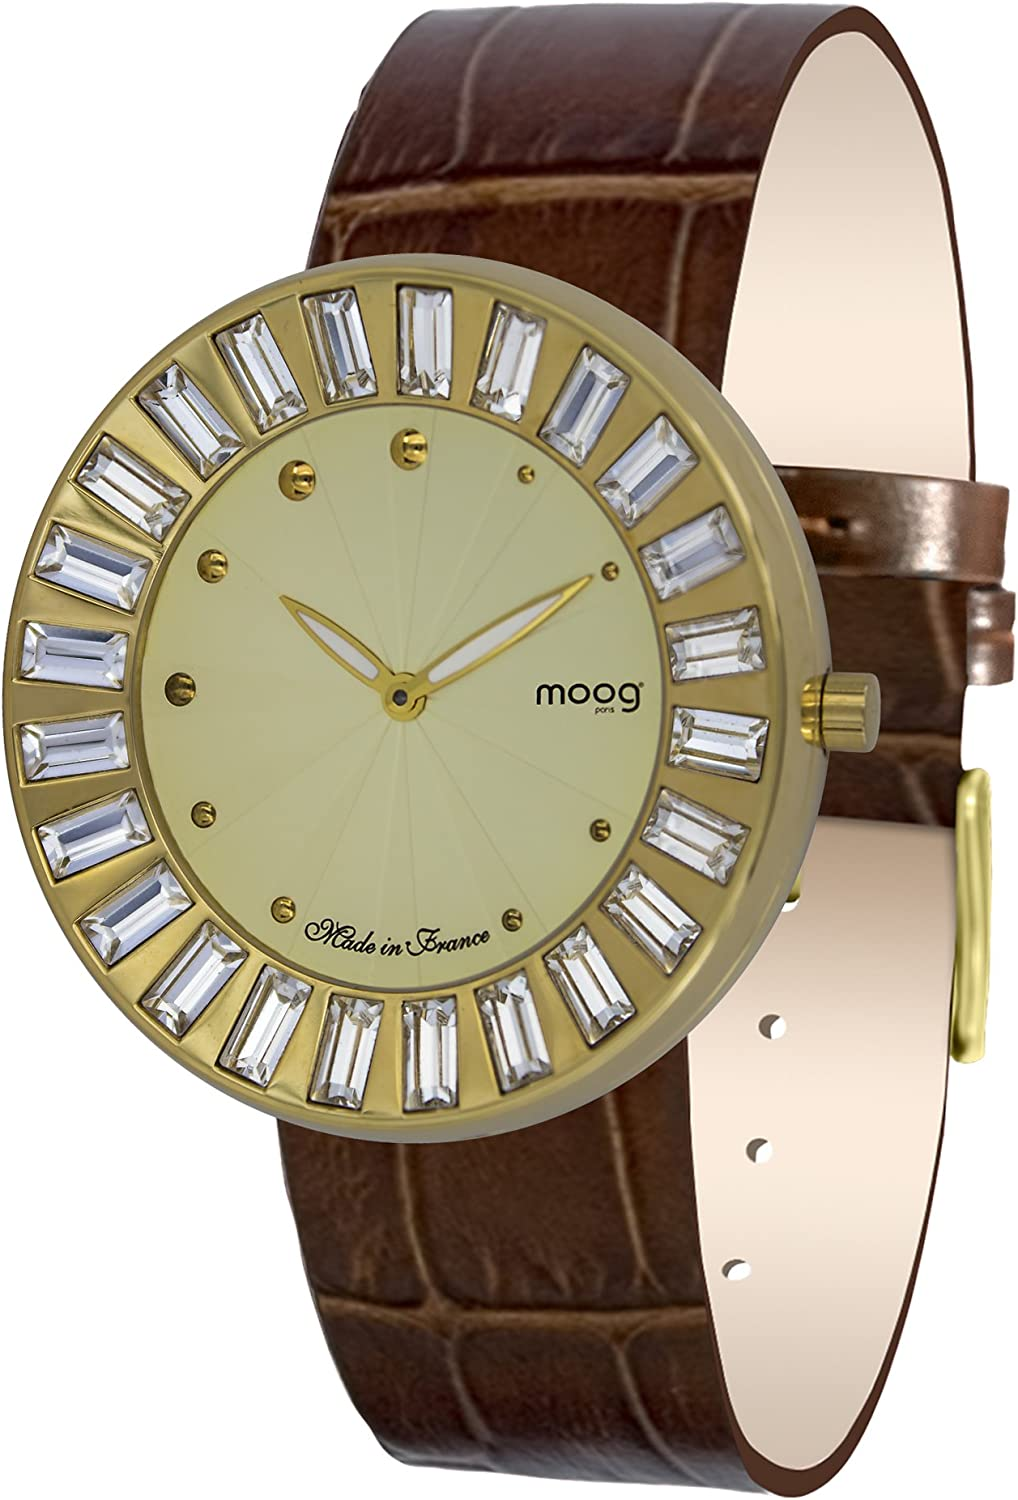 Moog Paris Sunshine Women s Watch with Champagne White Silver Black Dial, Interchangable White Brown Silver Black Strap in Genuine Leather